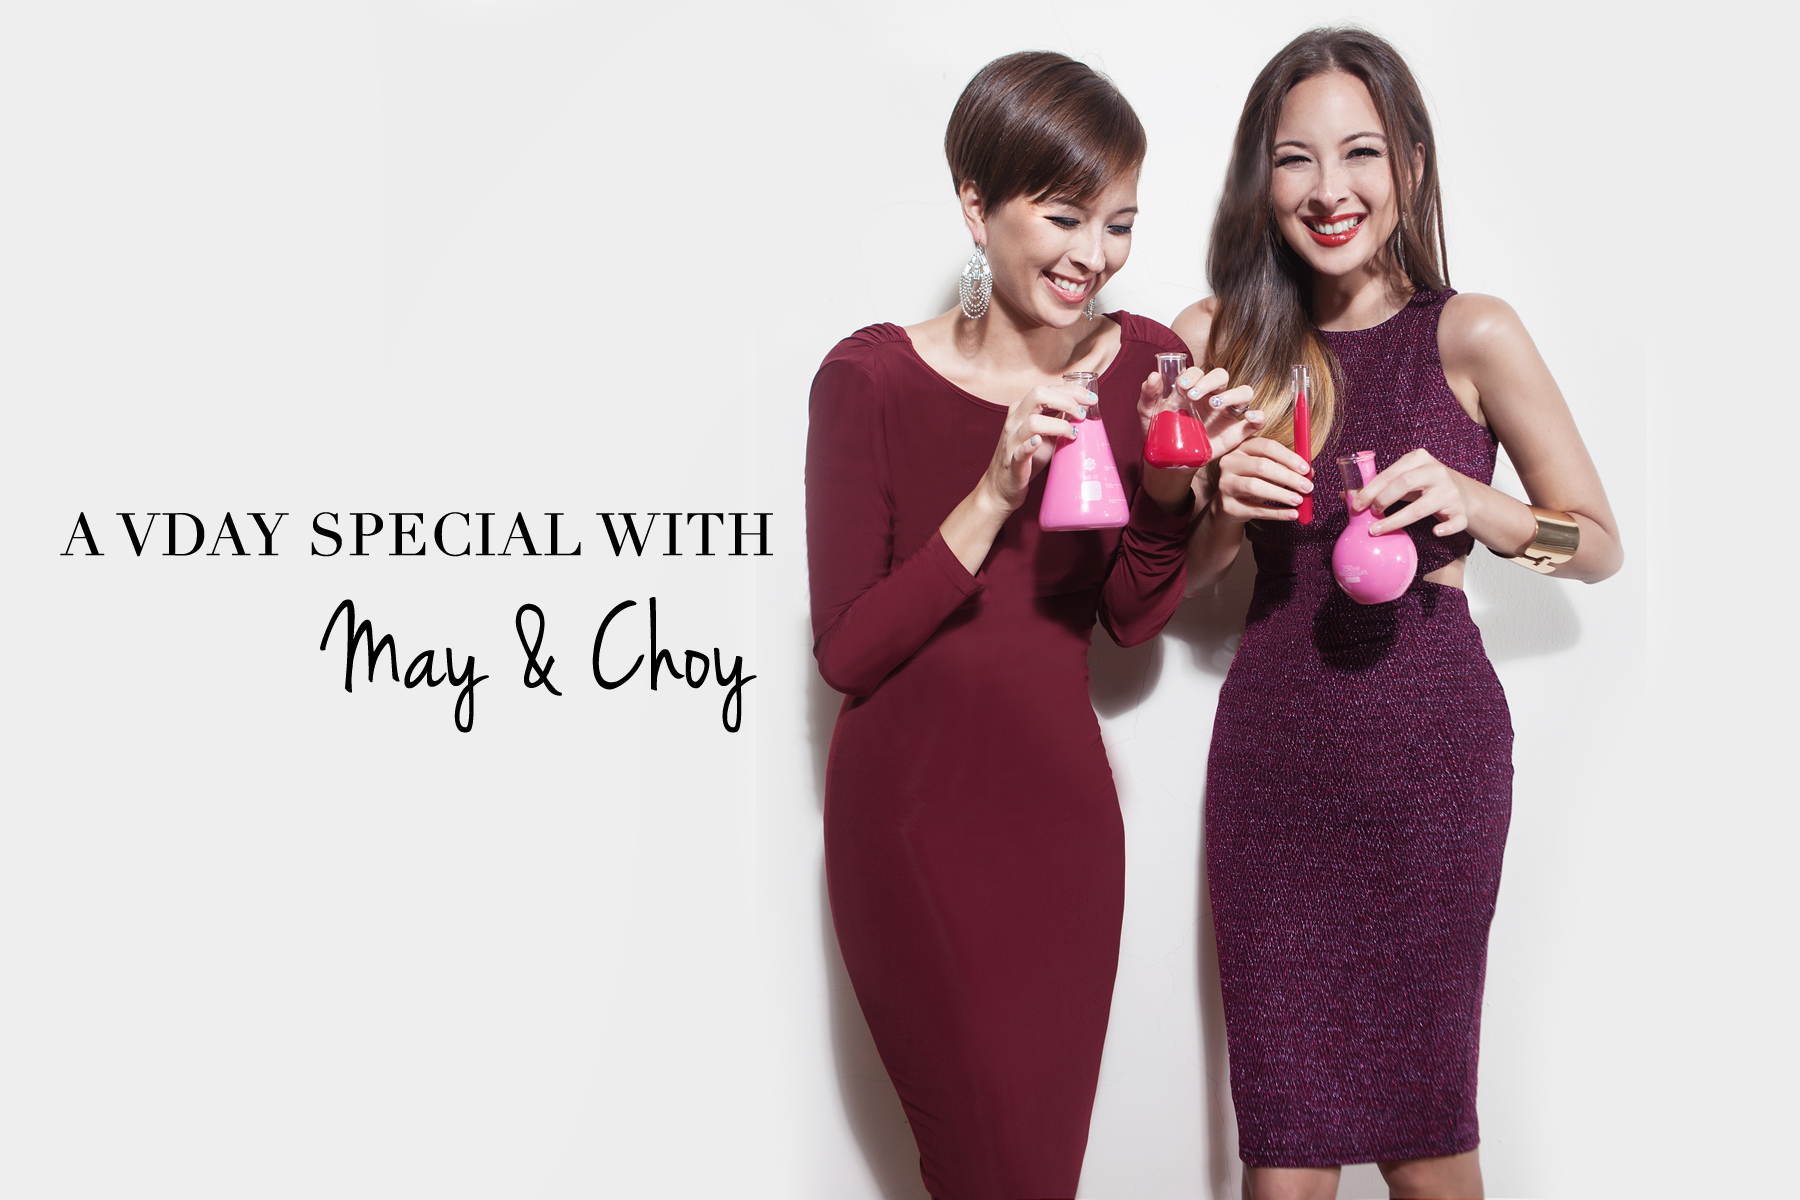 Love Bonito | Sharing our love for fashion here at Singapore's leading online fashion destination.